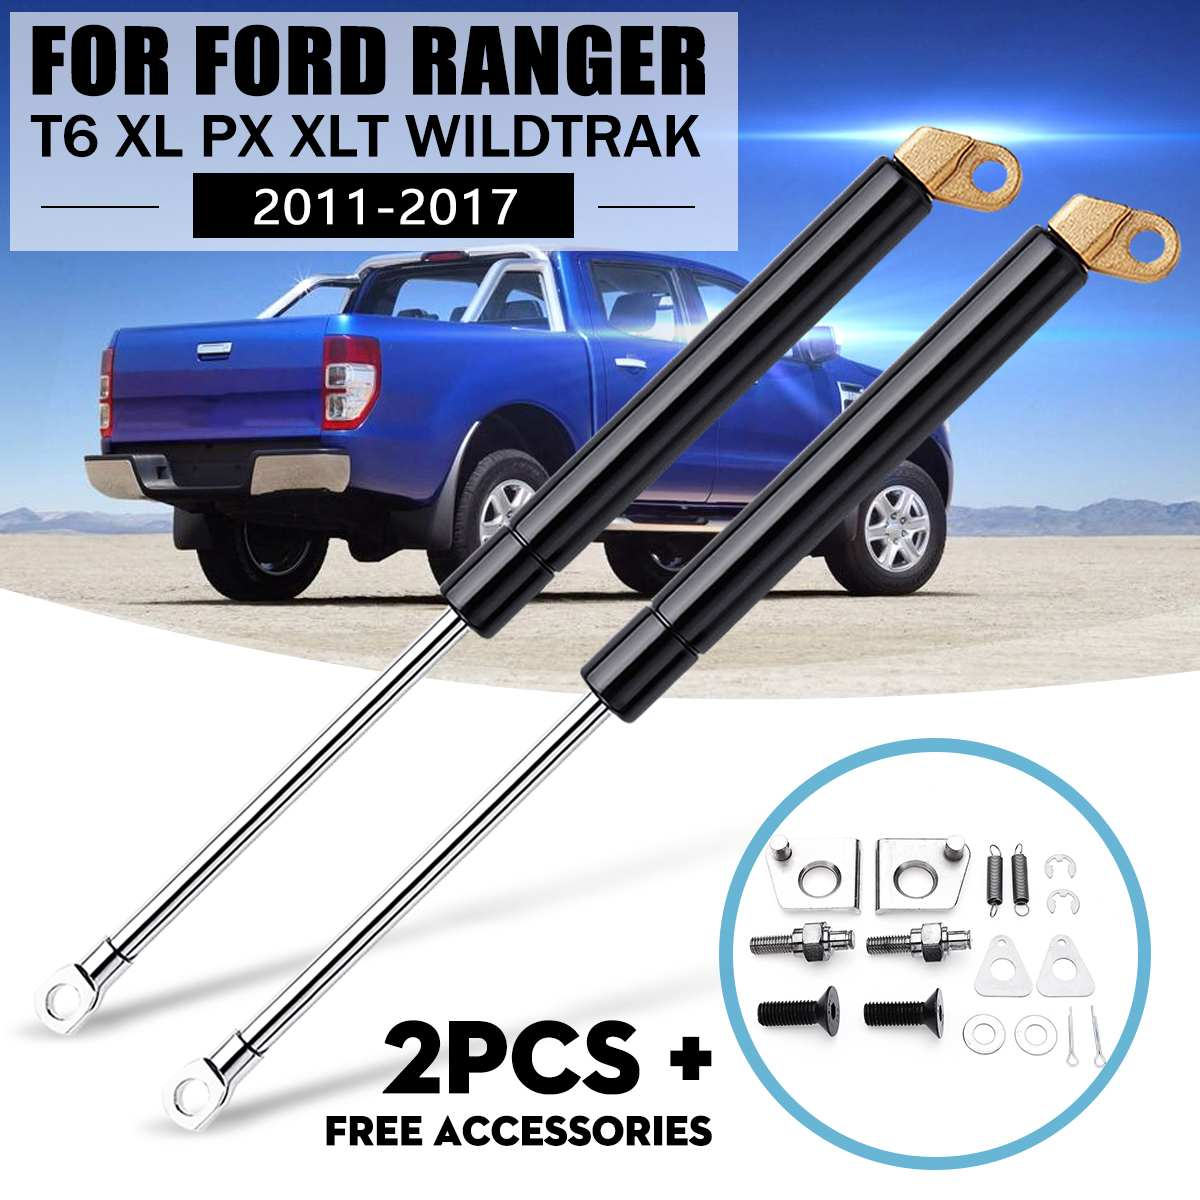 Tailgate Latch Control fits Ford Ranger 2004 to 2011